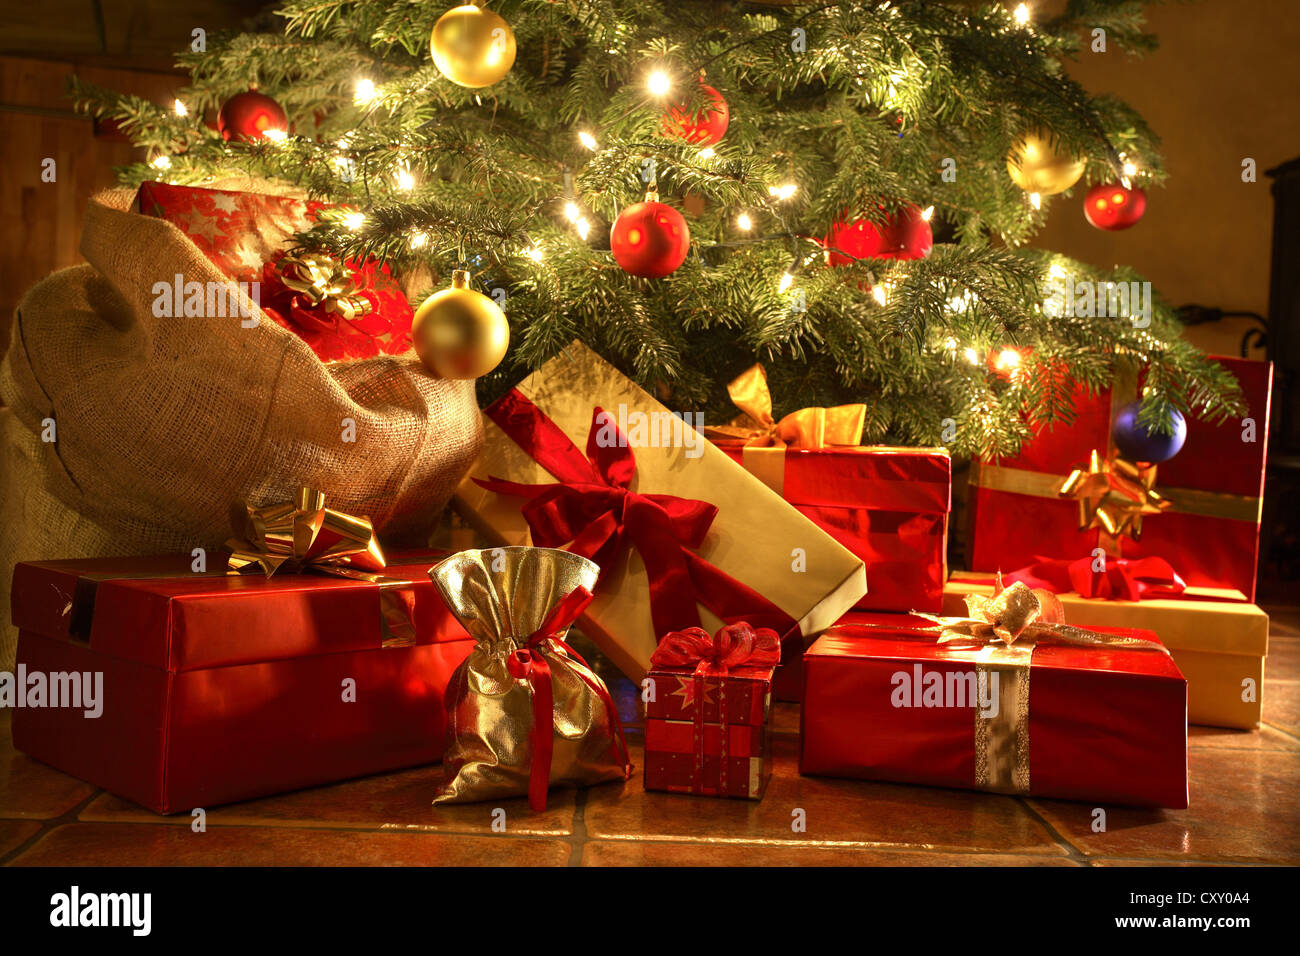 Christmas presents under a Christmas tree - Stock Image